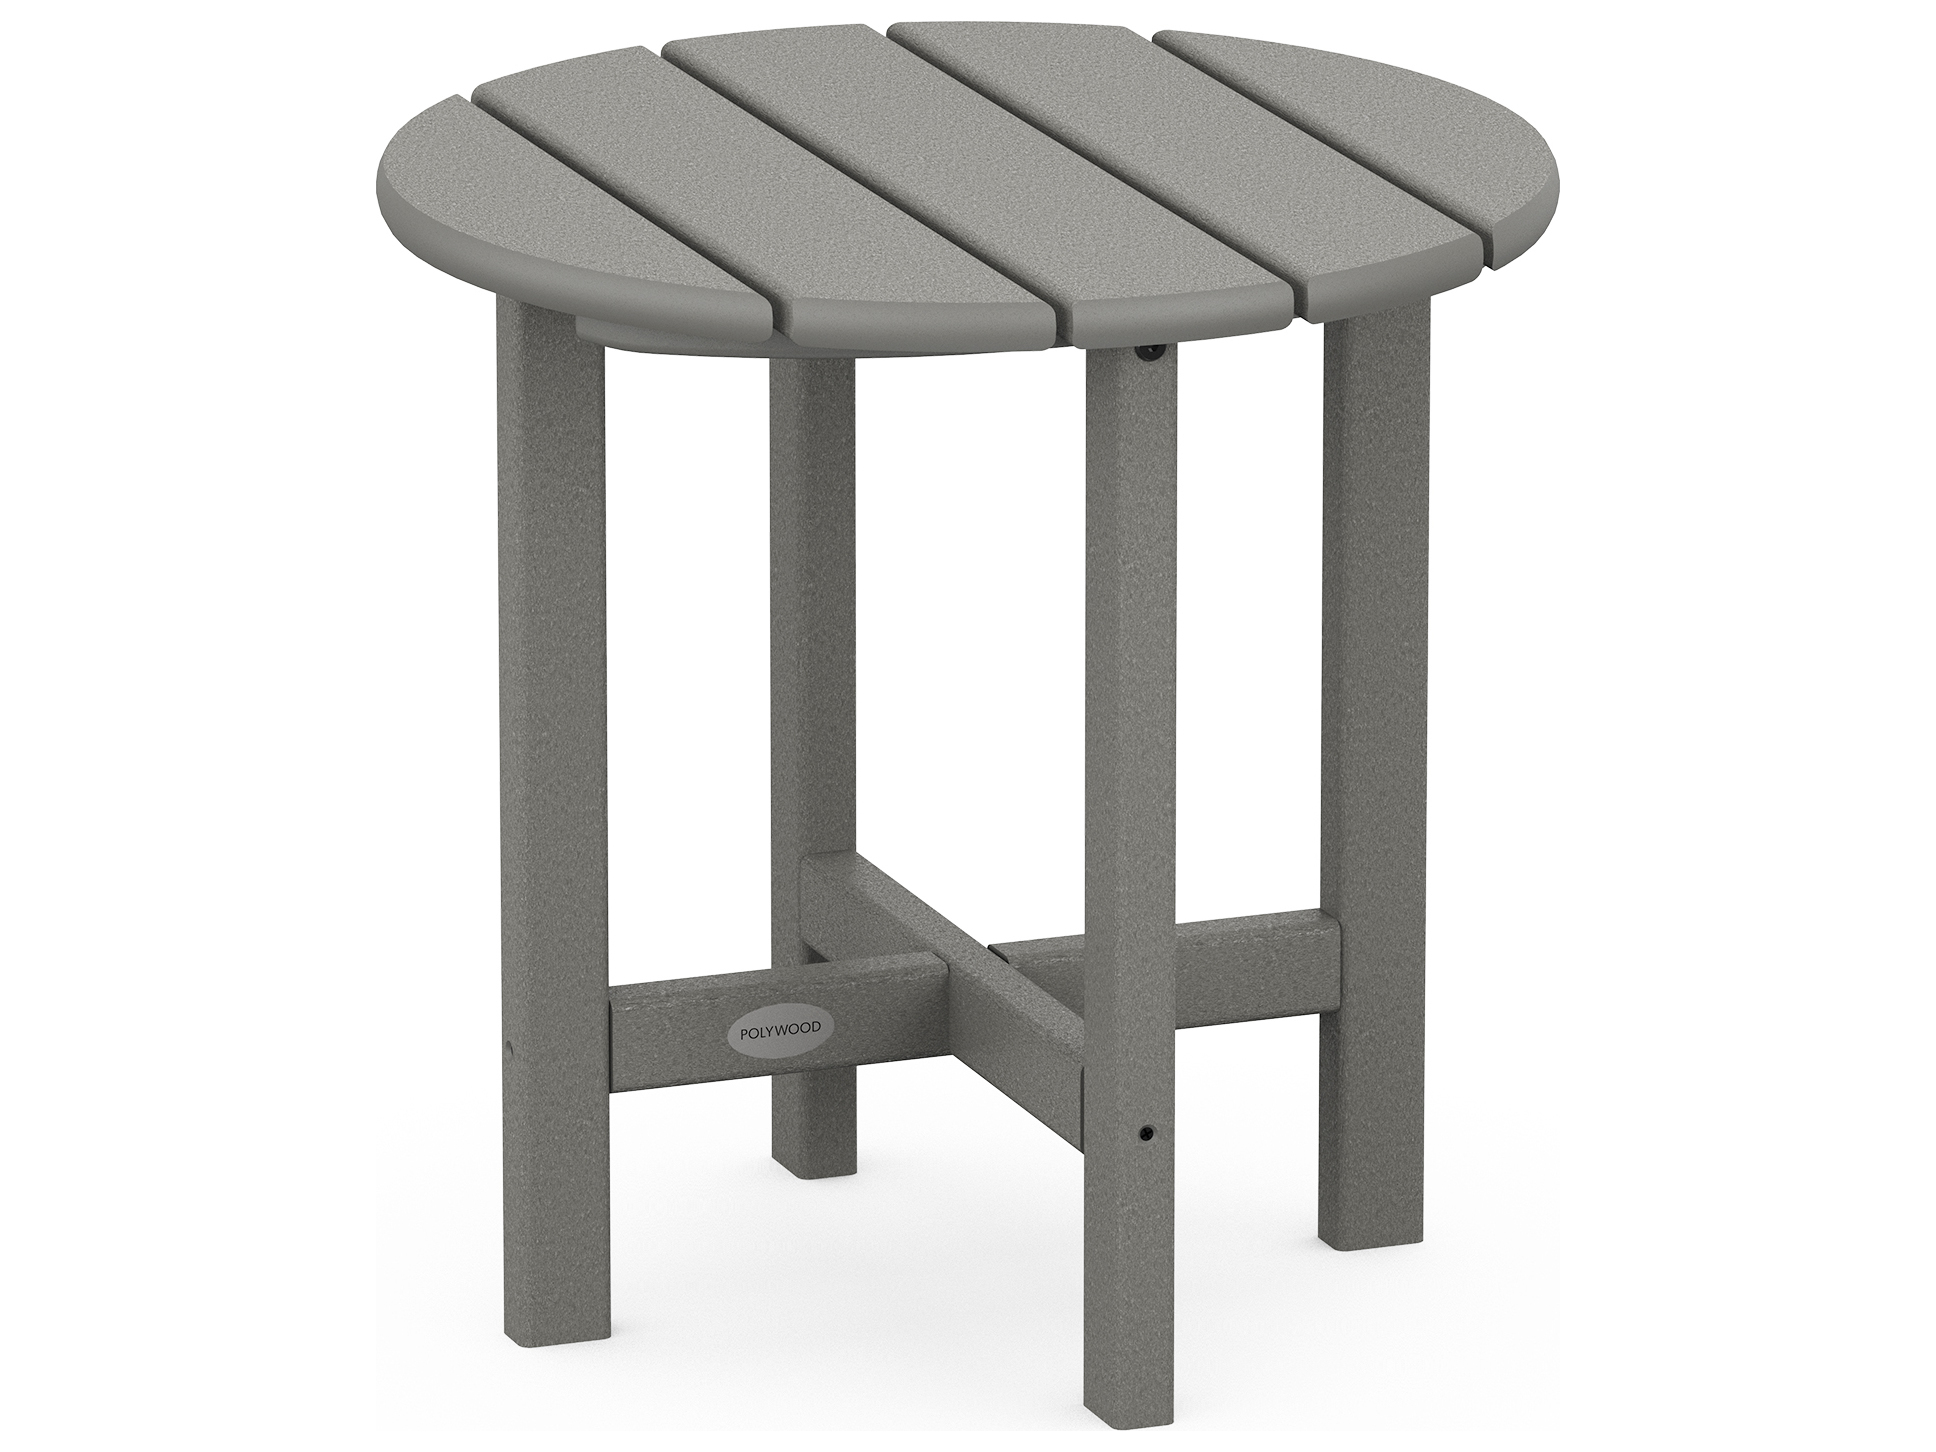 Polywood 174 Traditional Recycled Plastic 18 Round End Table